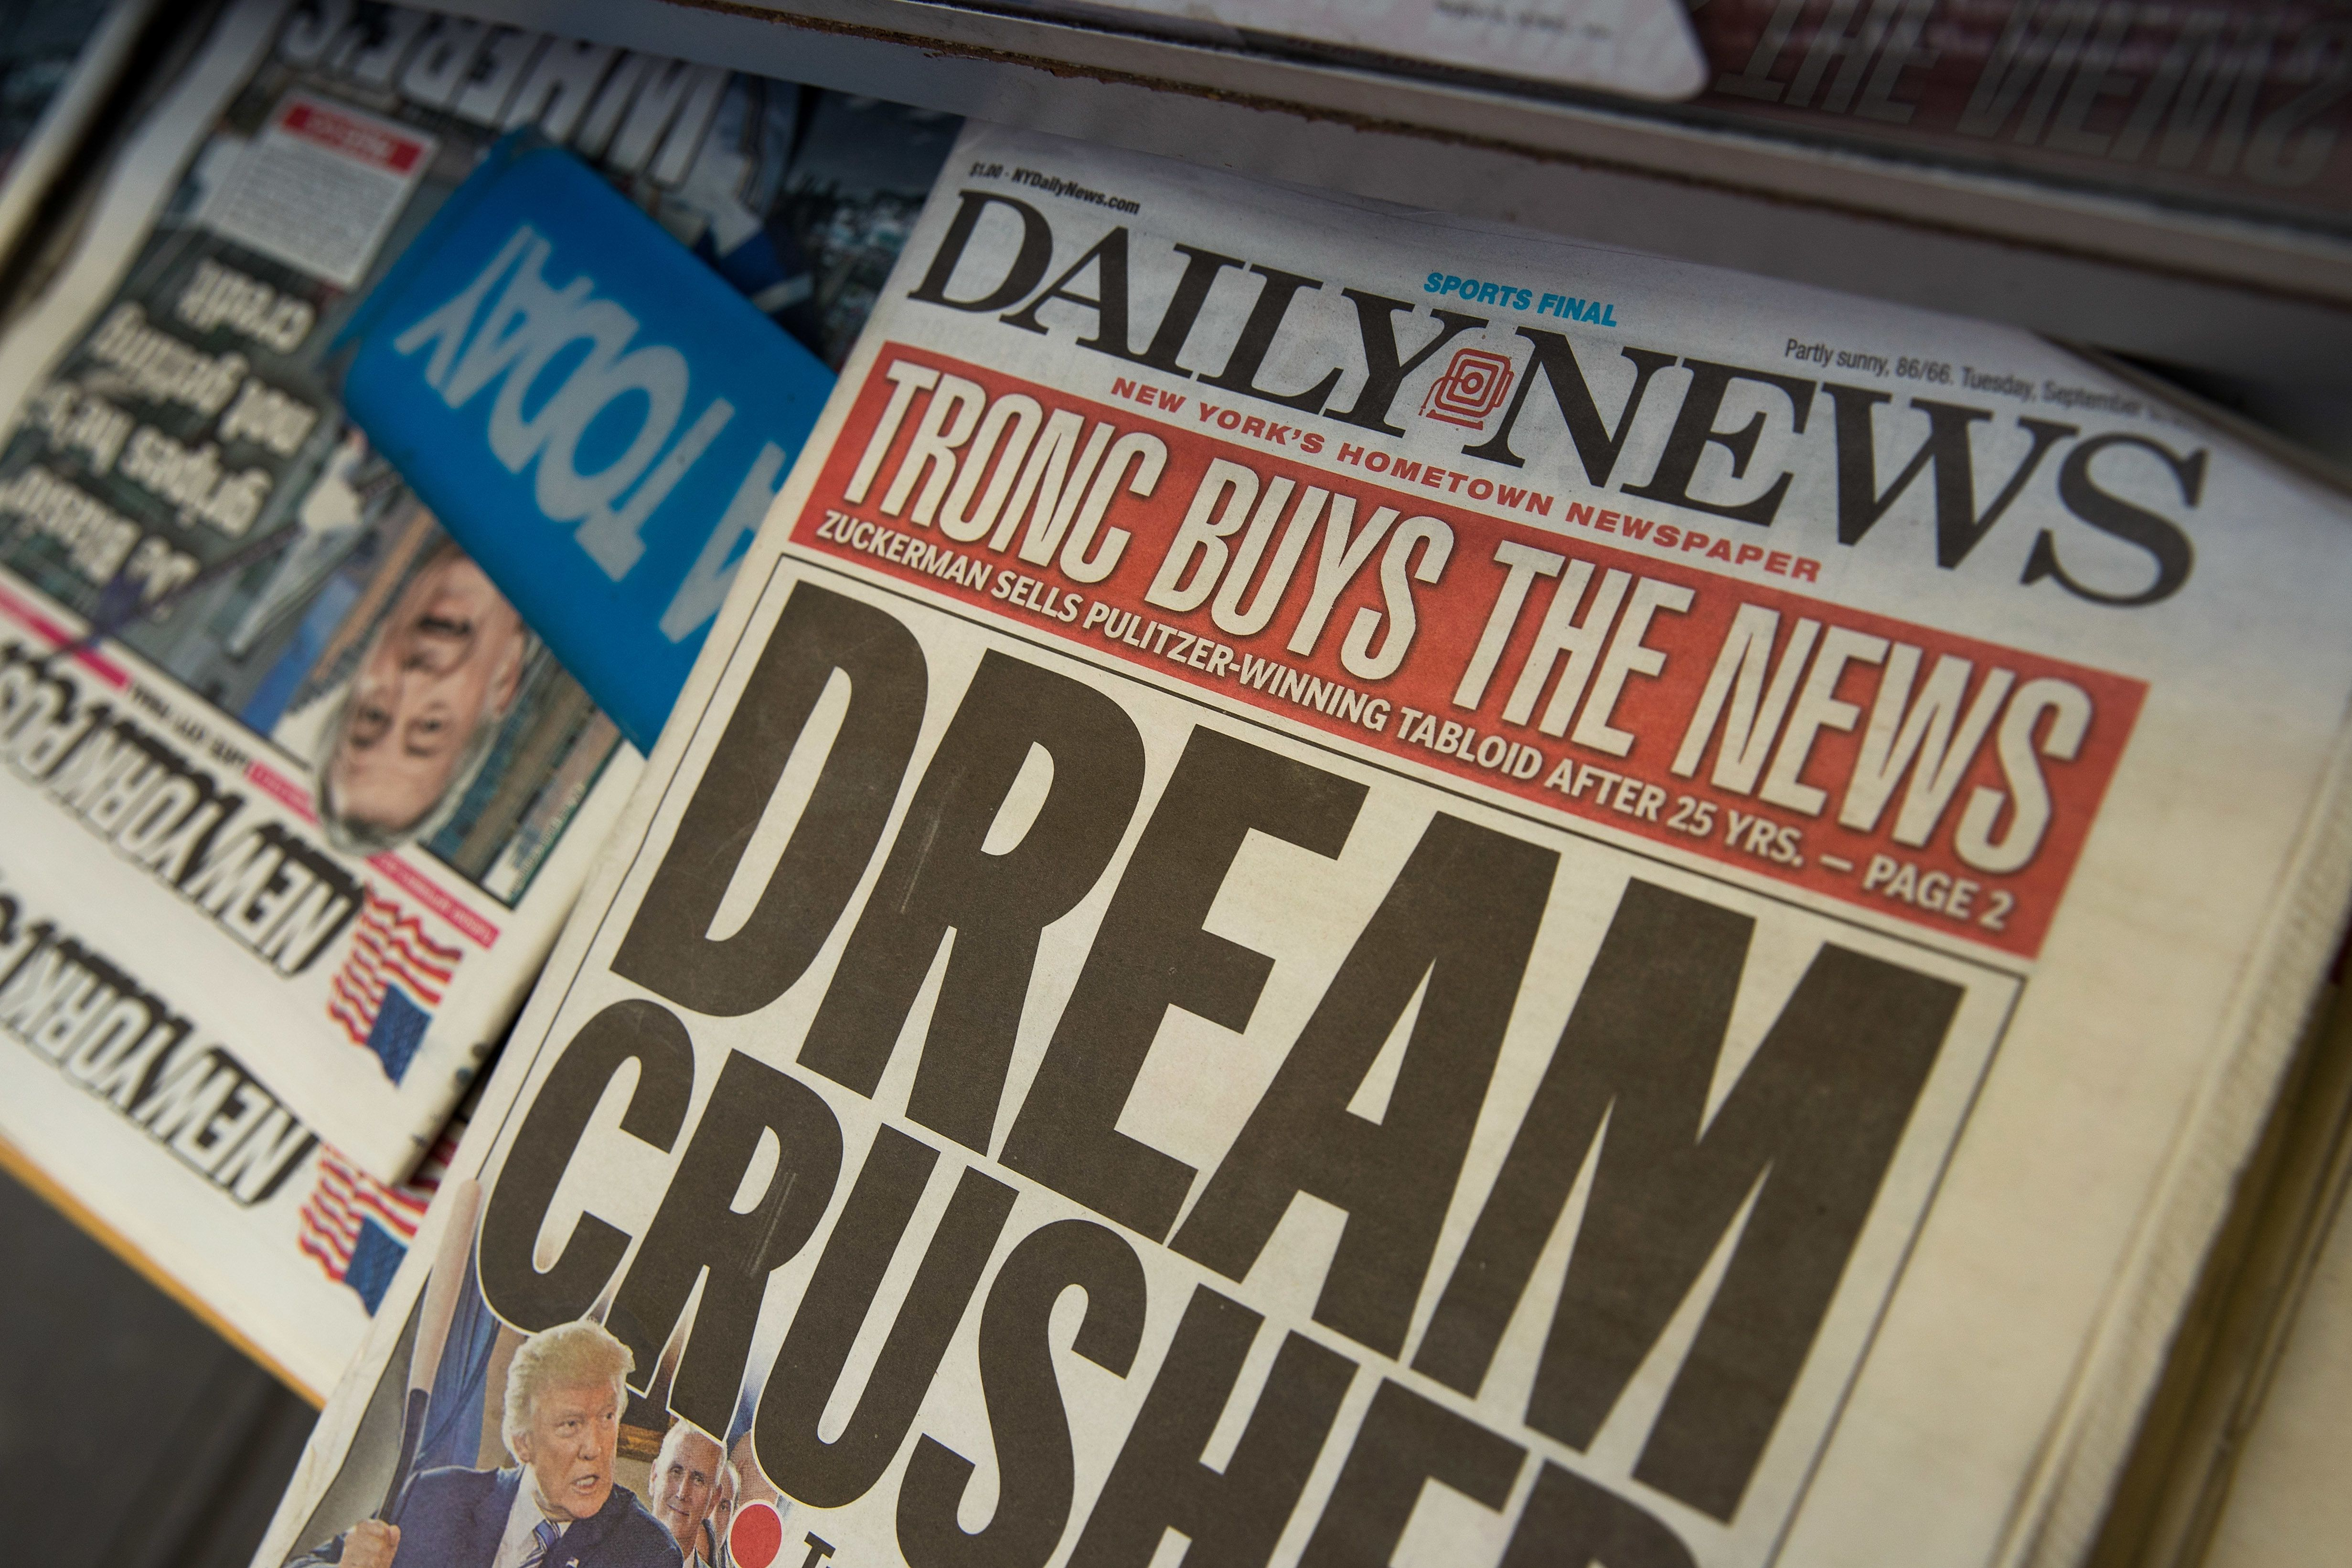 NEW YORK, NY - SEPTEMBER 5: A copy of Tuesday's New York Daily News sits on the shelf of a newsstand, September 5, 2017 in New York City. Tronc, the publisher of the Chicago Tribune and The Los Angeles Times newspapers, announced on Monday that is had purchased The New York Daily News. Previously owned by Mort Zuckerman, Tronc paid one dollar in cash plus the assumption of liabilities to purchase the nearly 100-year old tabloid newspaper. (Photo by Drew Angerer/Getty Images)